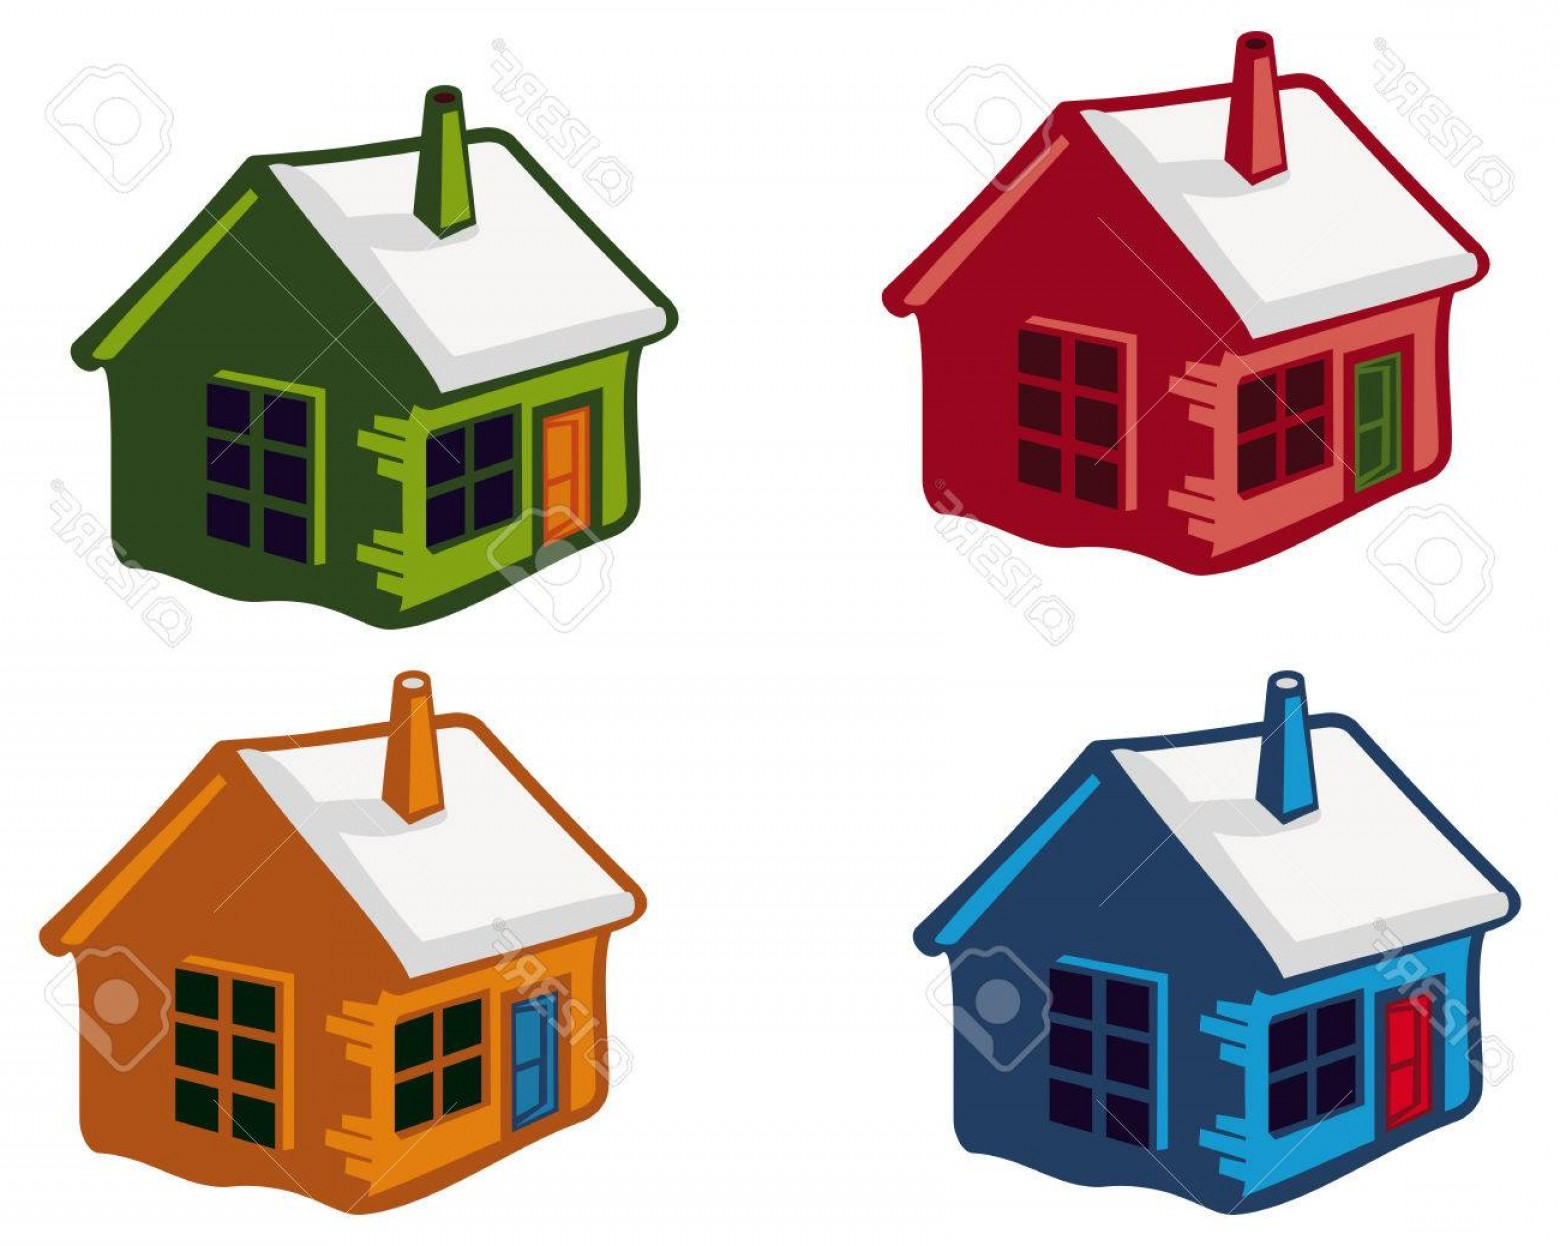 House Clip Art Vector: Photostock Vector Cute Little Houses With Snowy Roofs Vector Clip Art